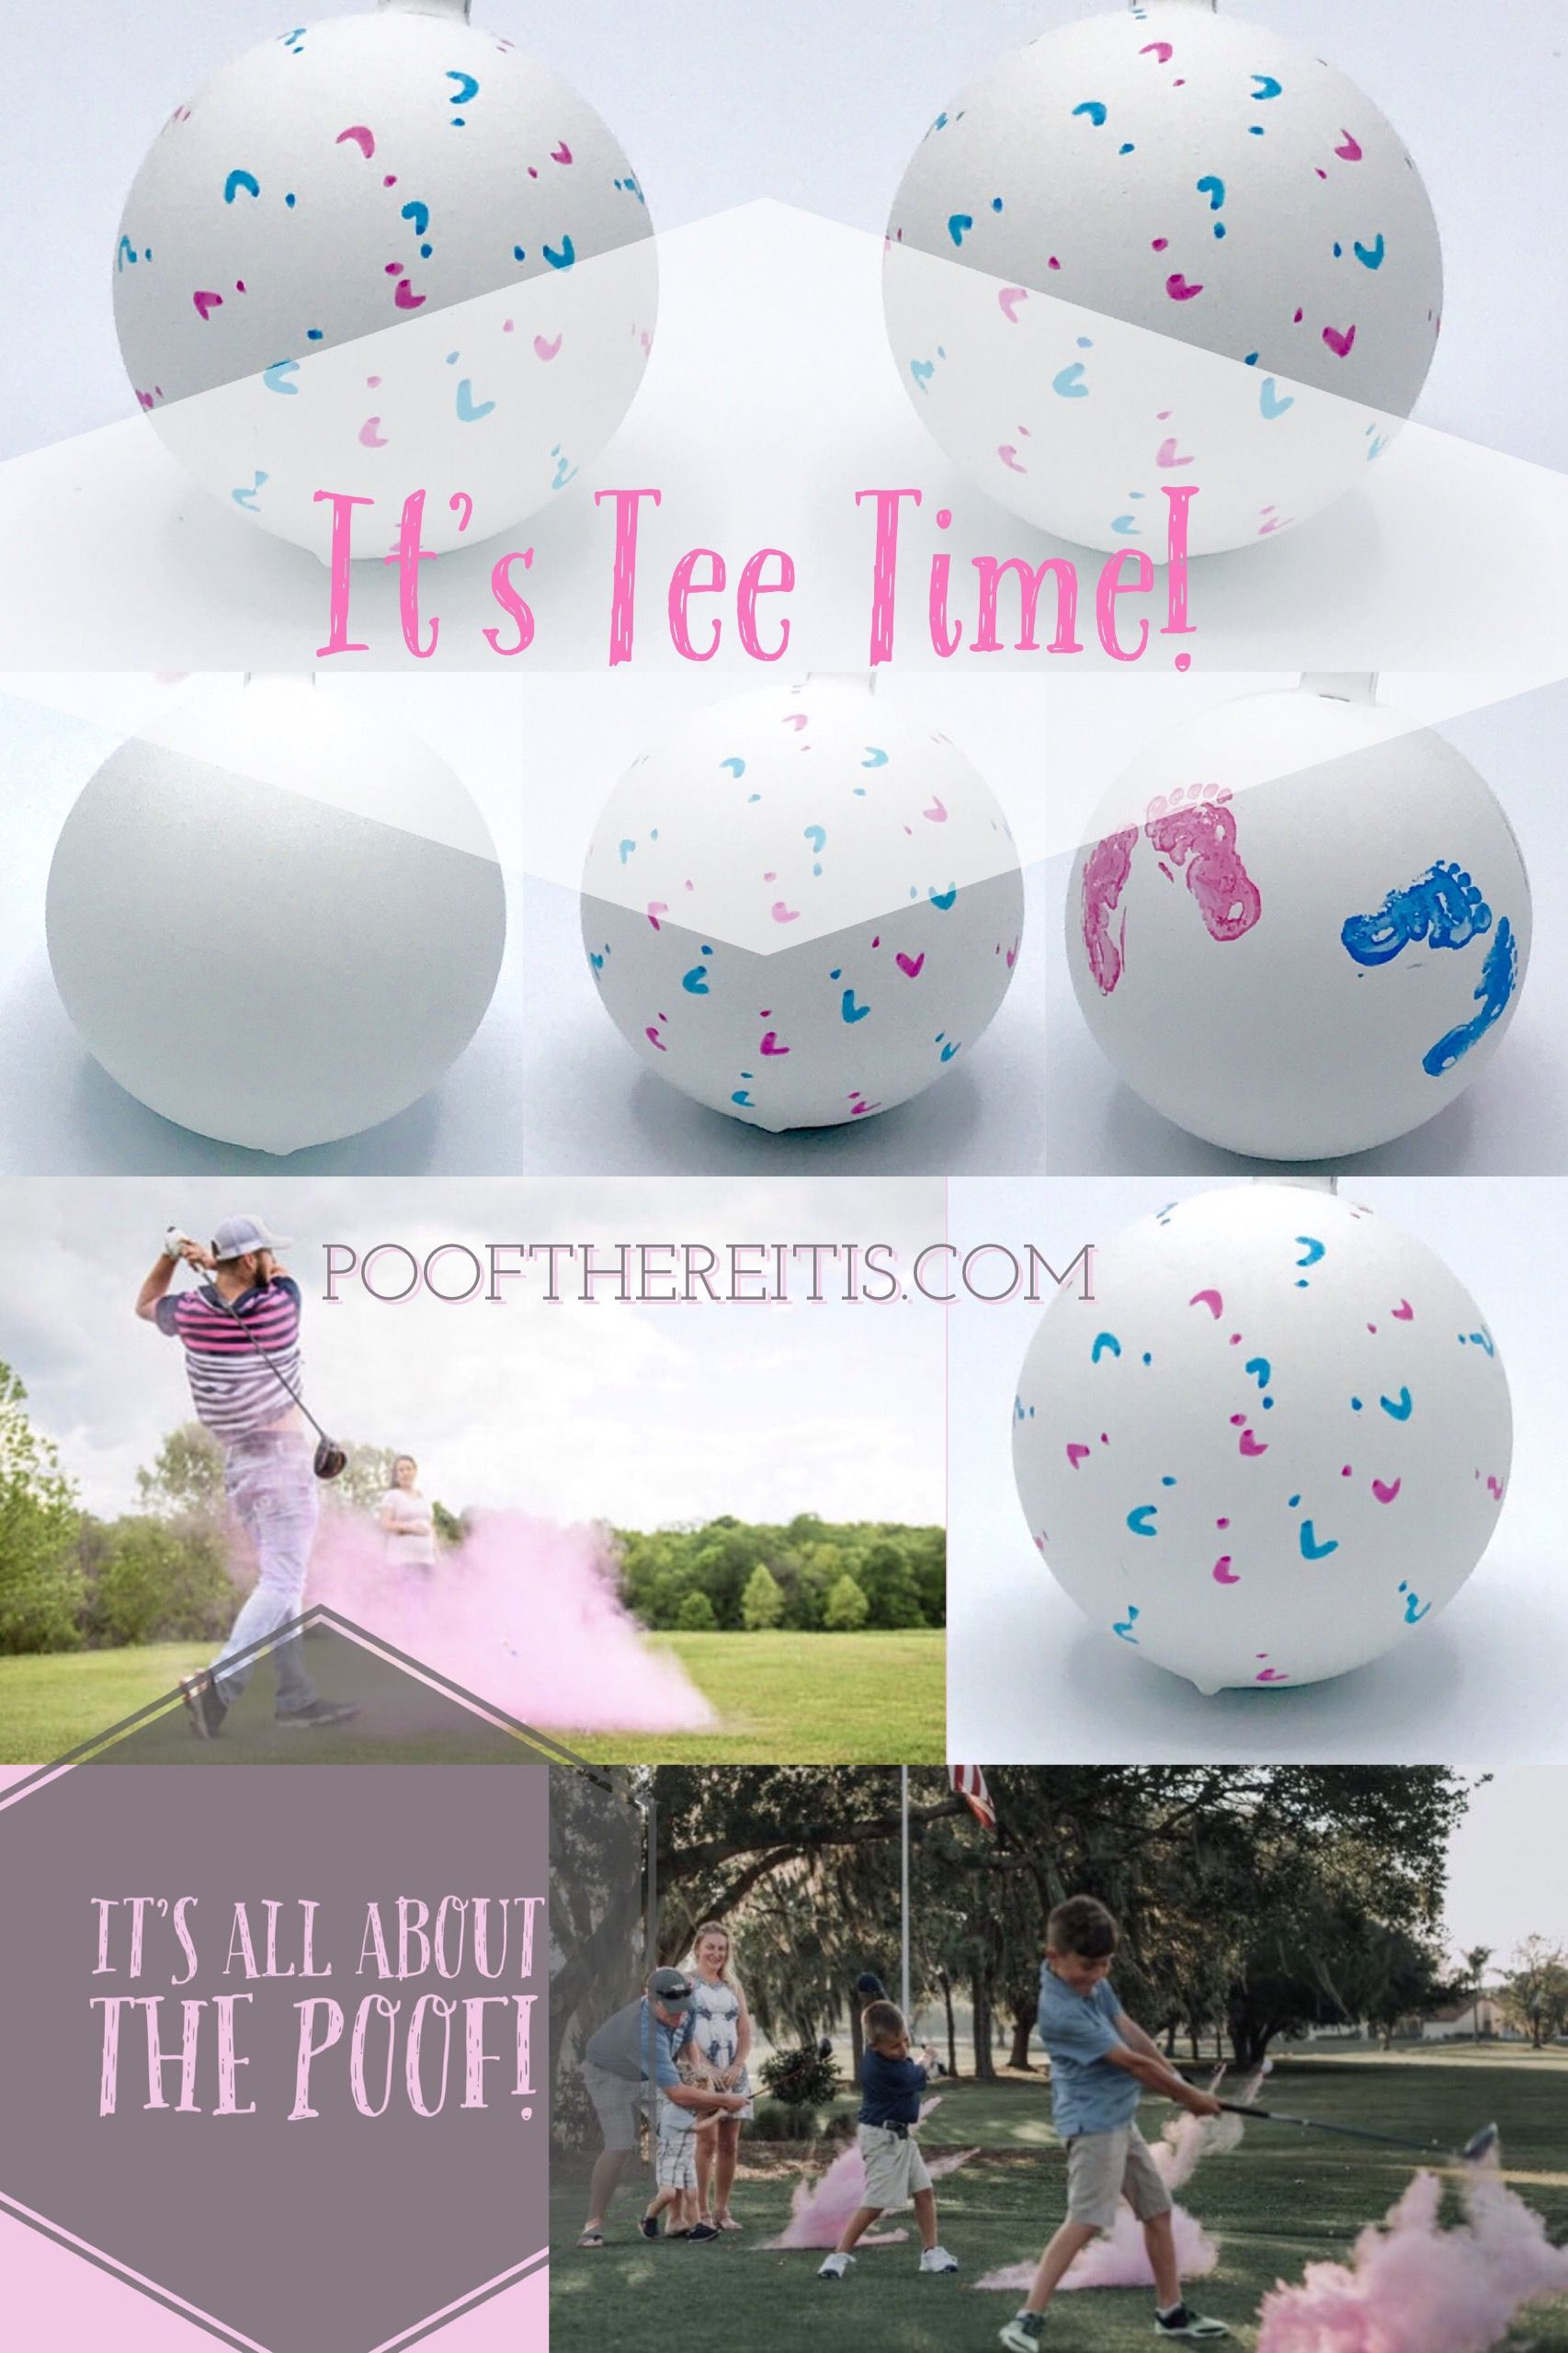 Golf Ball Gender Reveal Use what the Pros use cause it is tee time